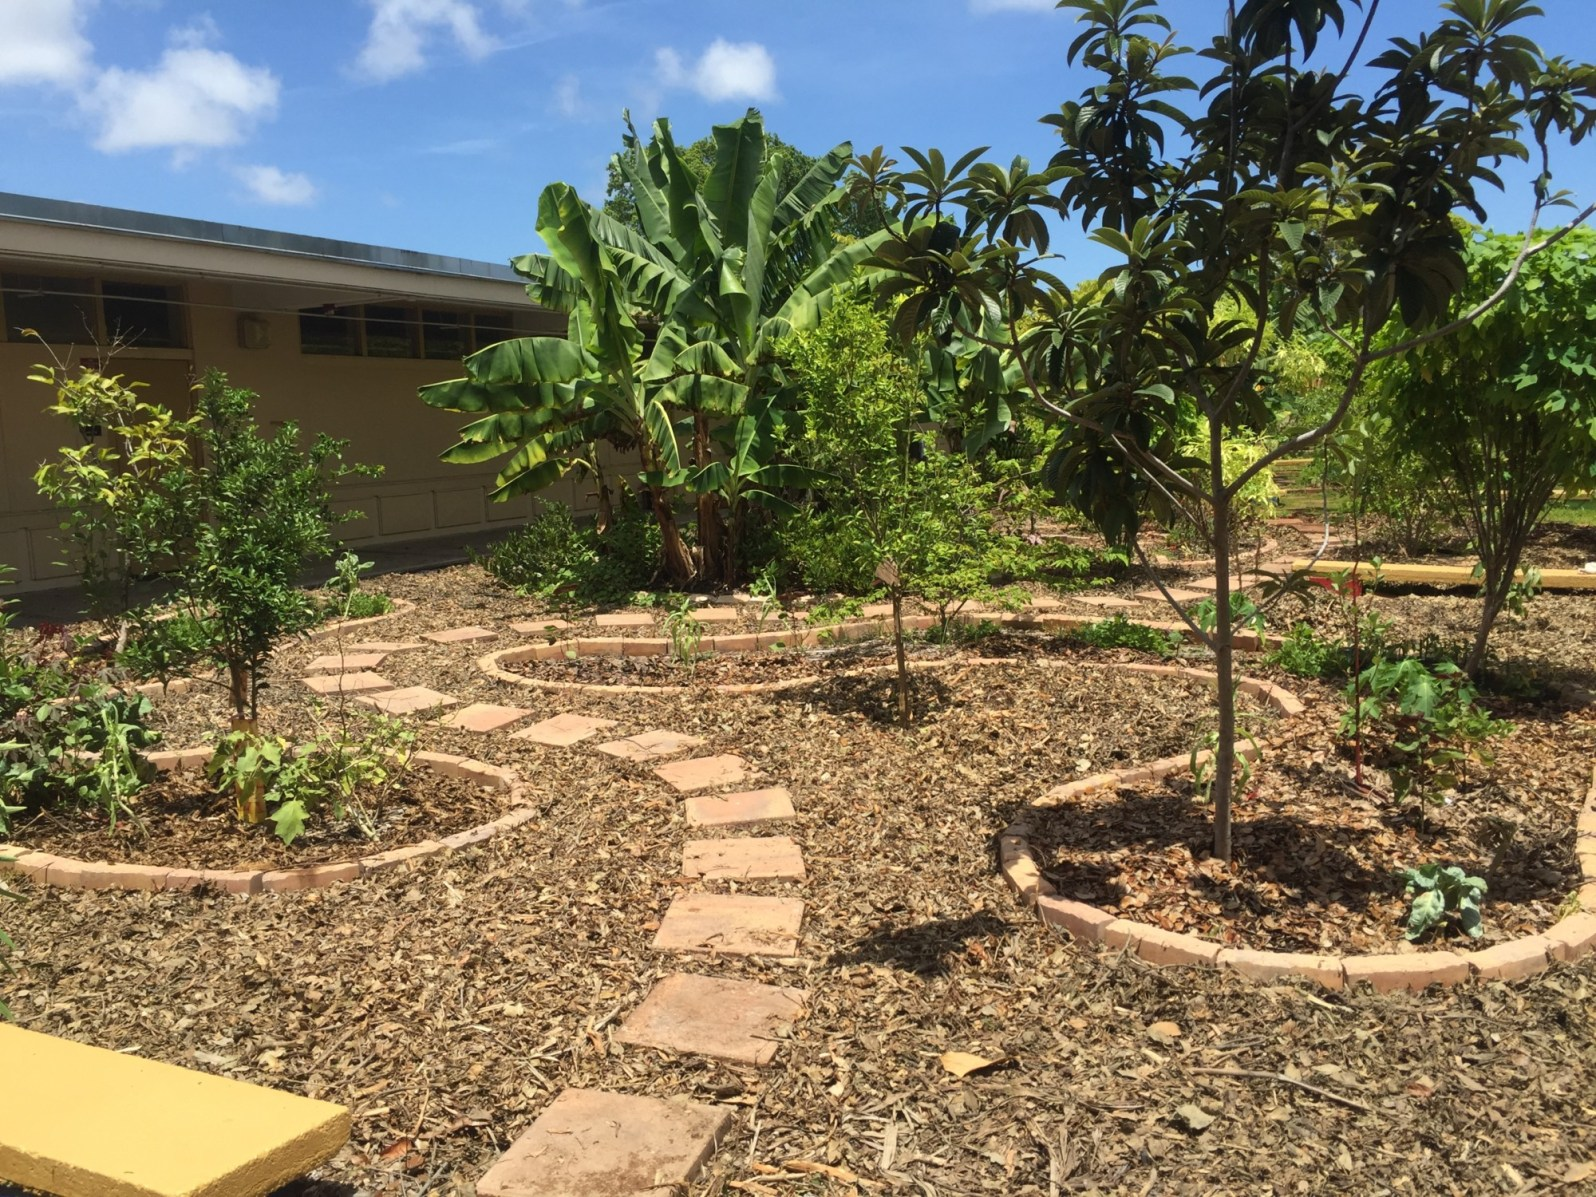 An Education Fund food forest at a local Miami school